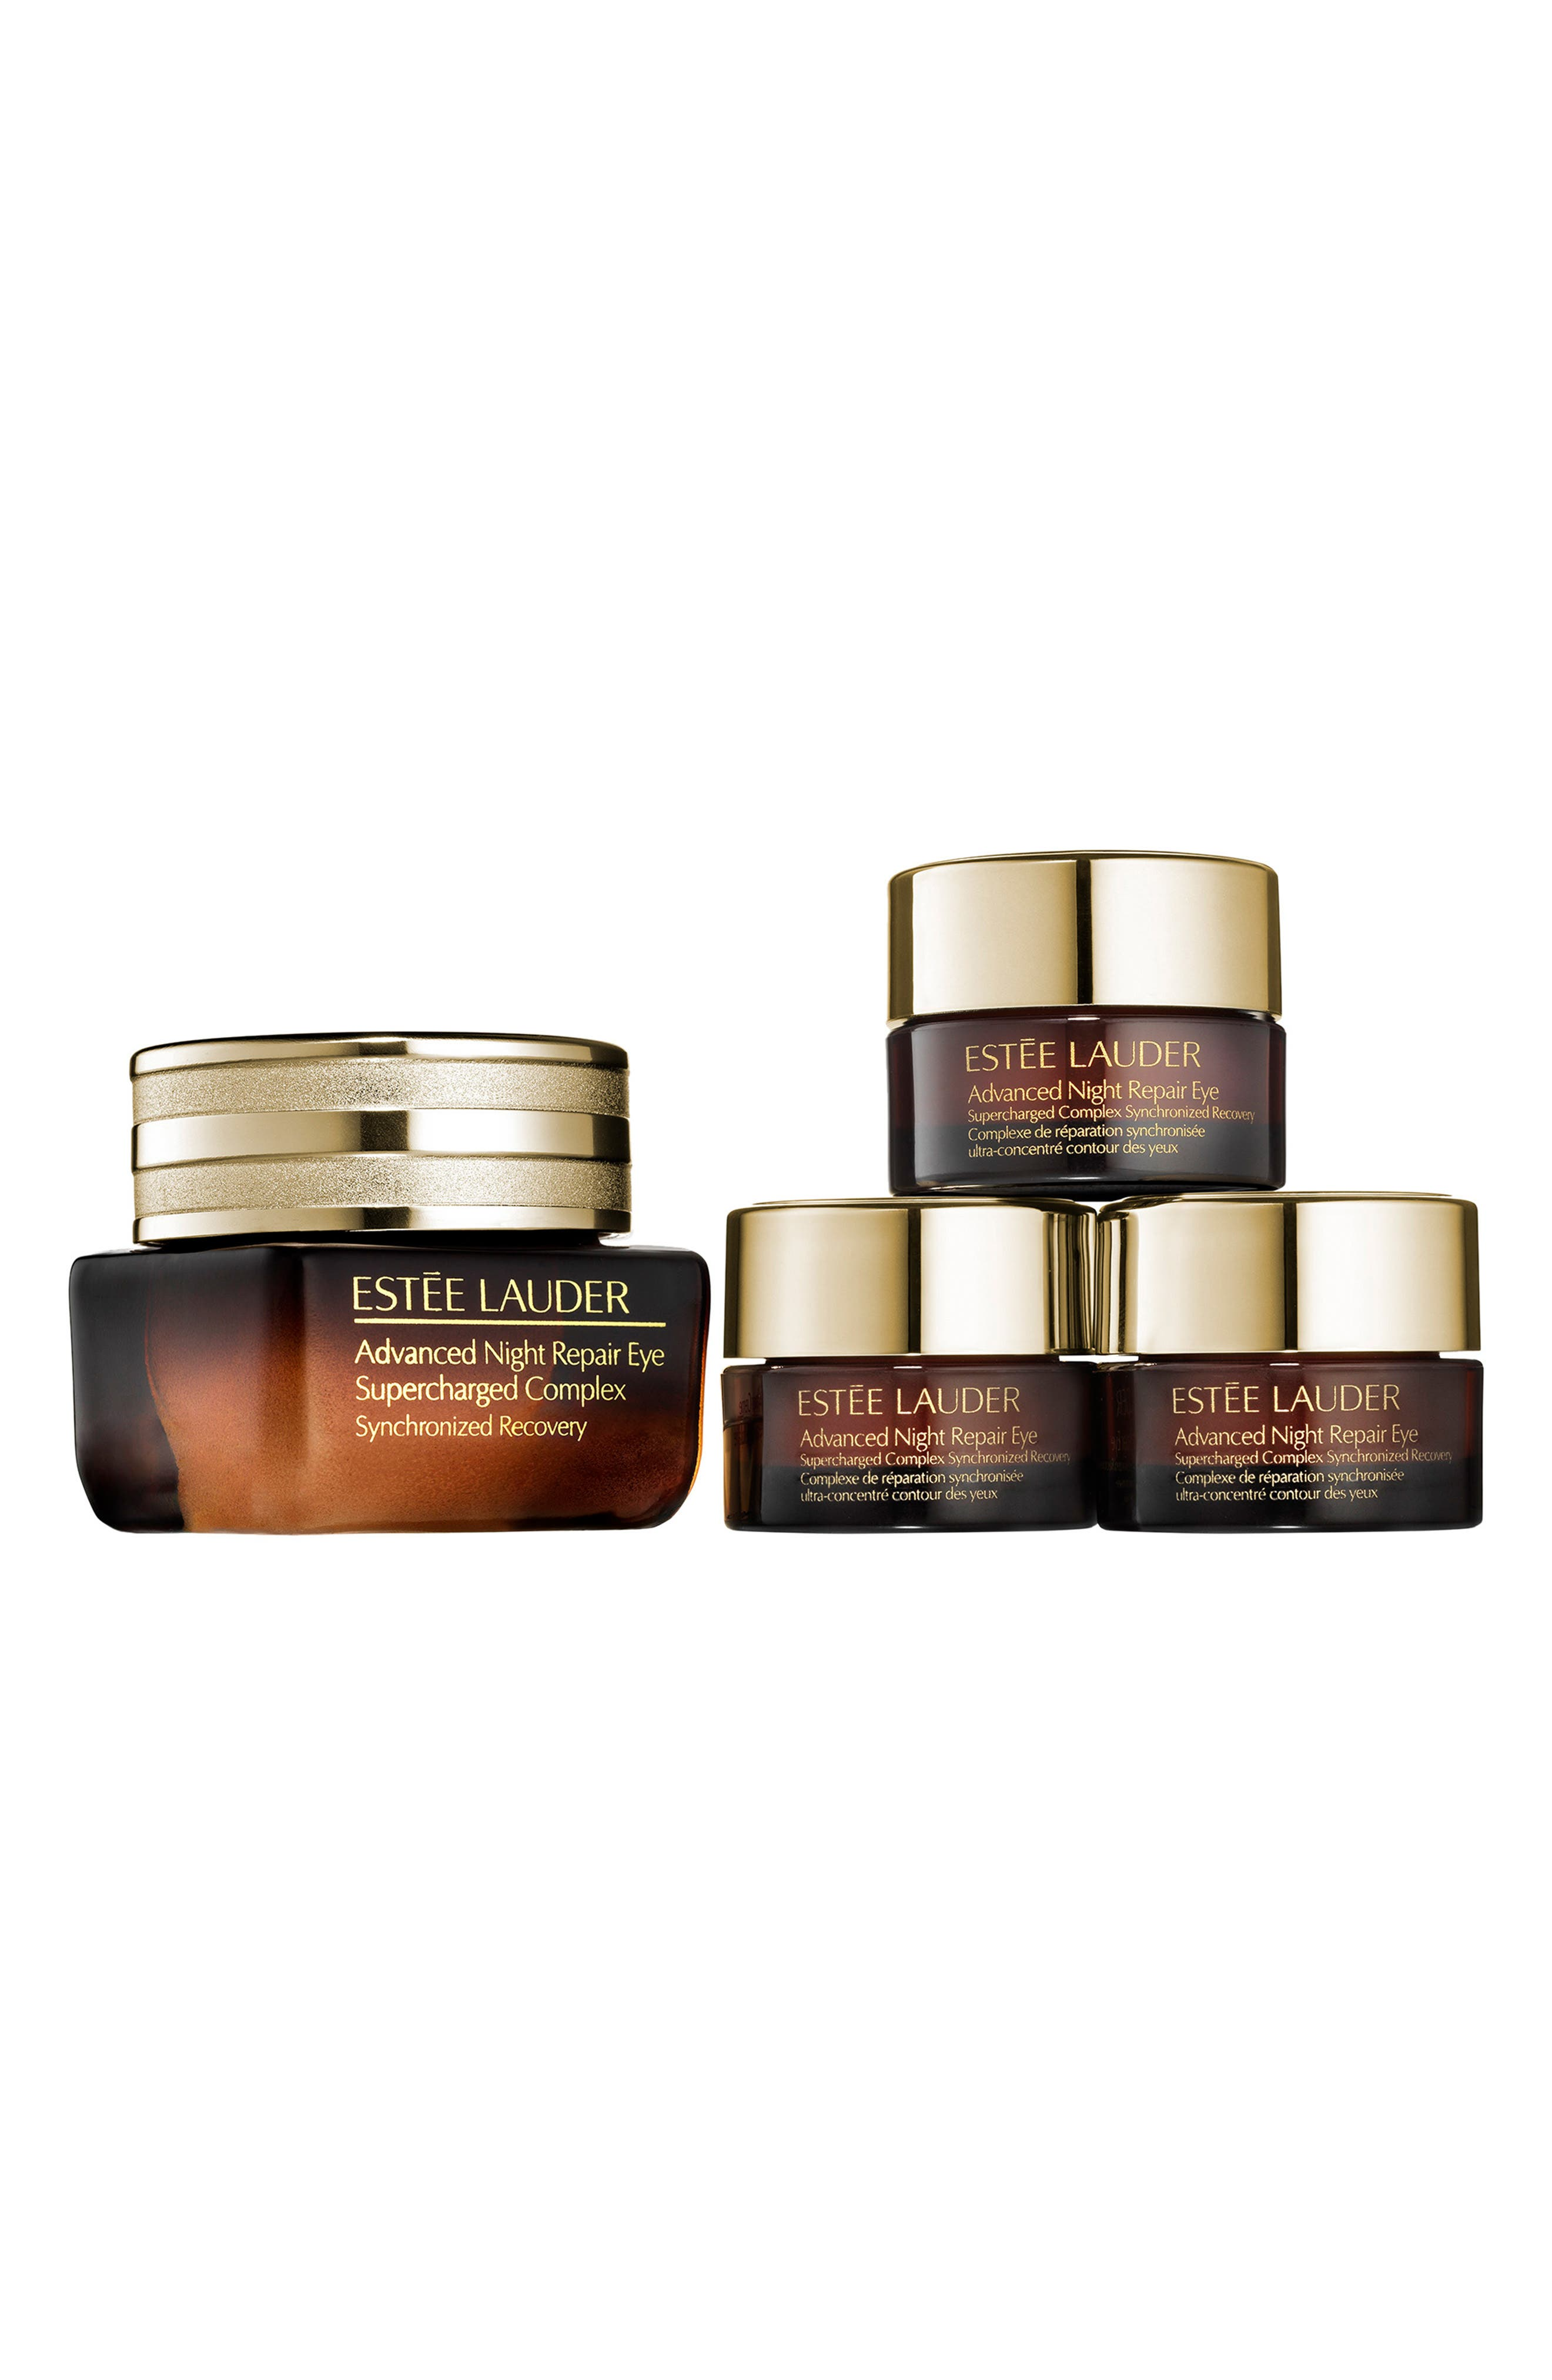 Estee Lauder Advanced Night Repair Eye Supercharged Complex Synchronized Recovery Set 128 Value Nordstrom